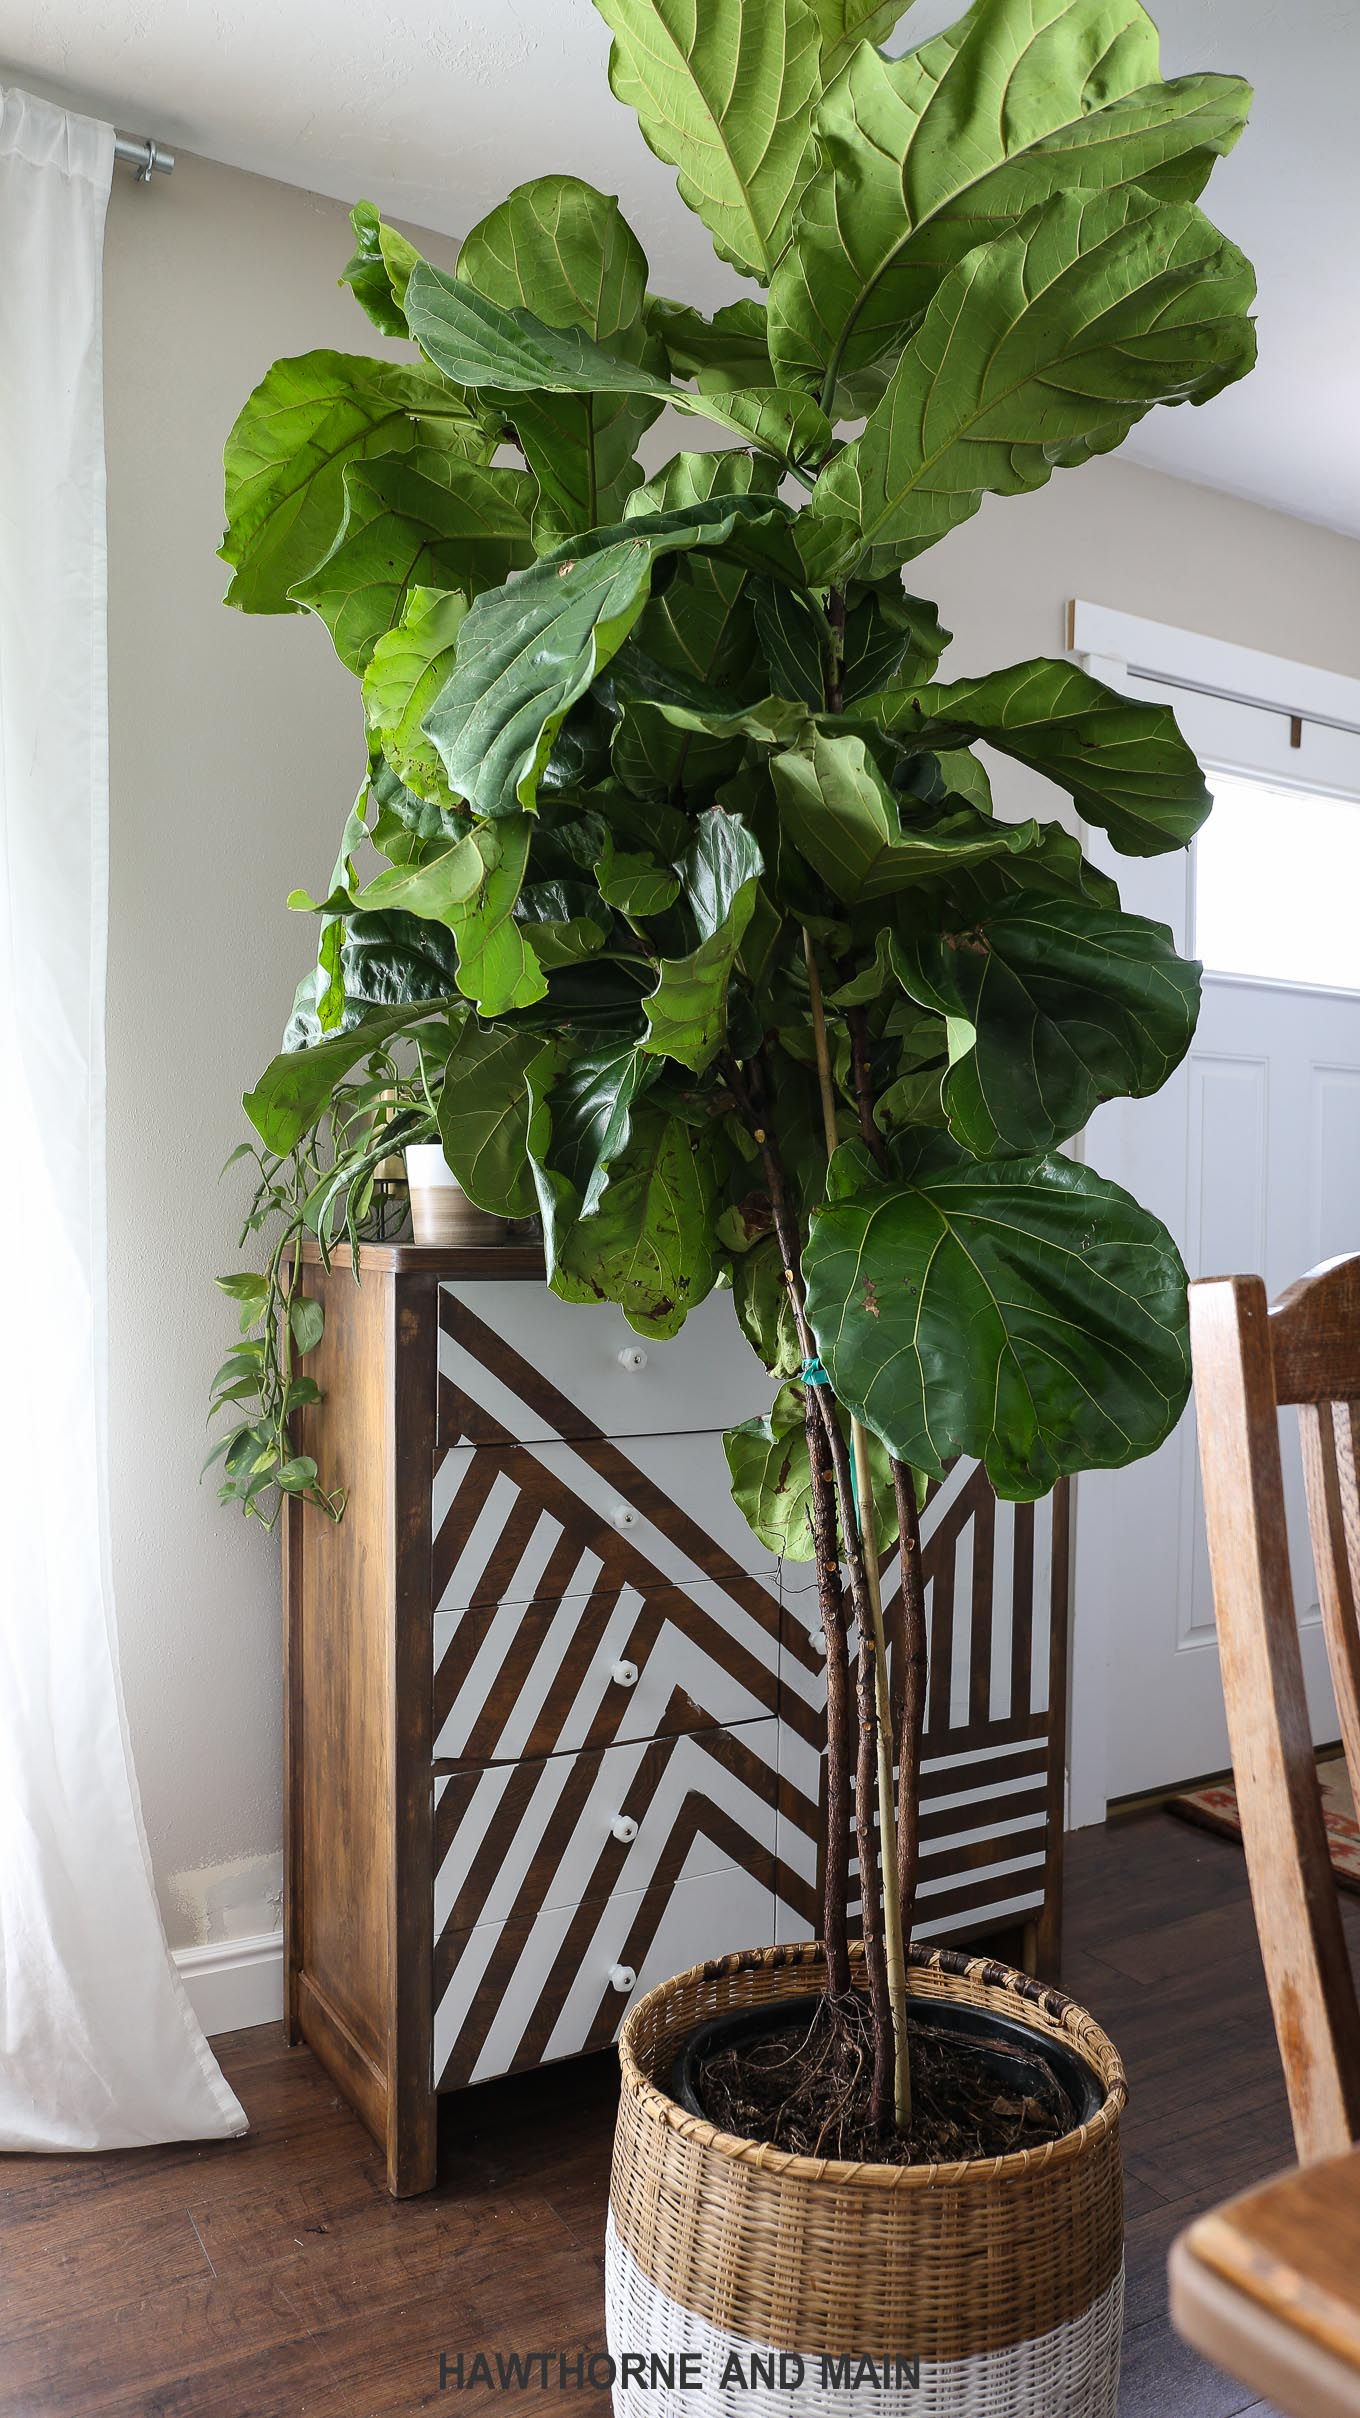 fiddle leaf fig trees are so prettybut how do you - Fiddle Leaf Fig Tree